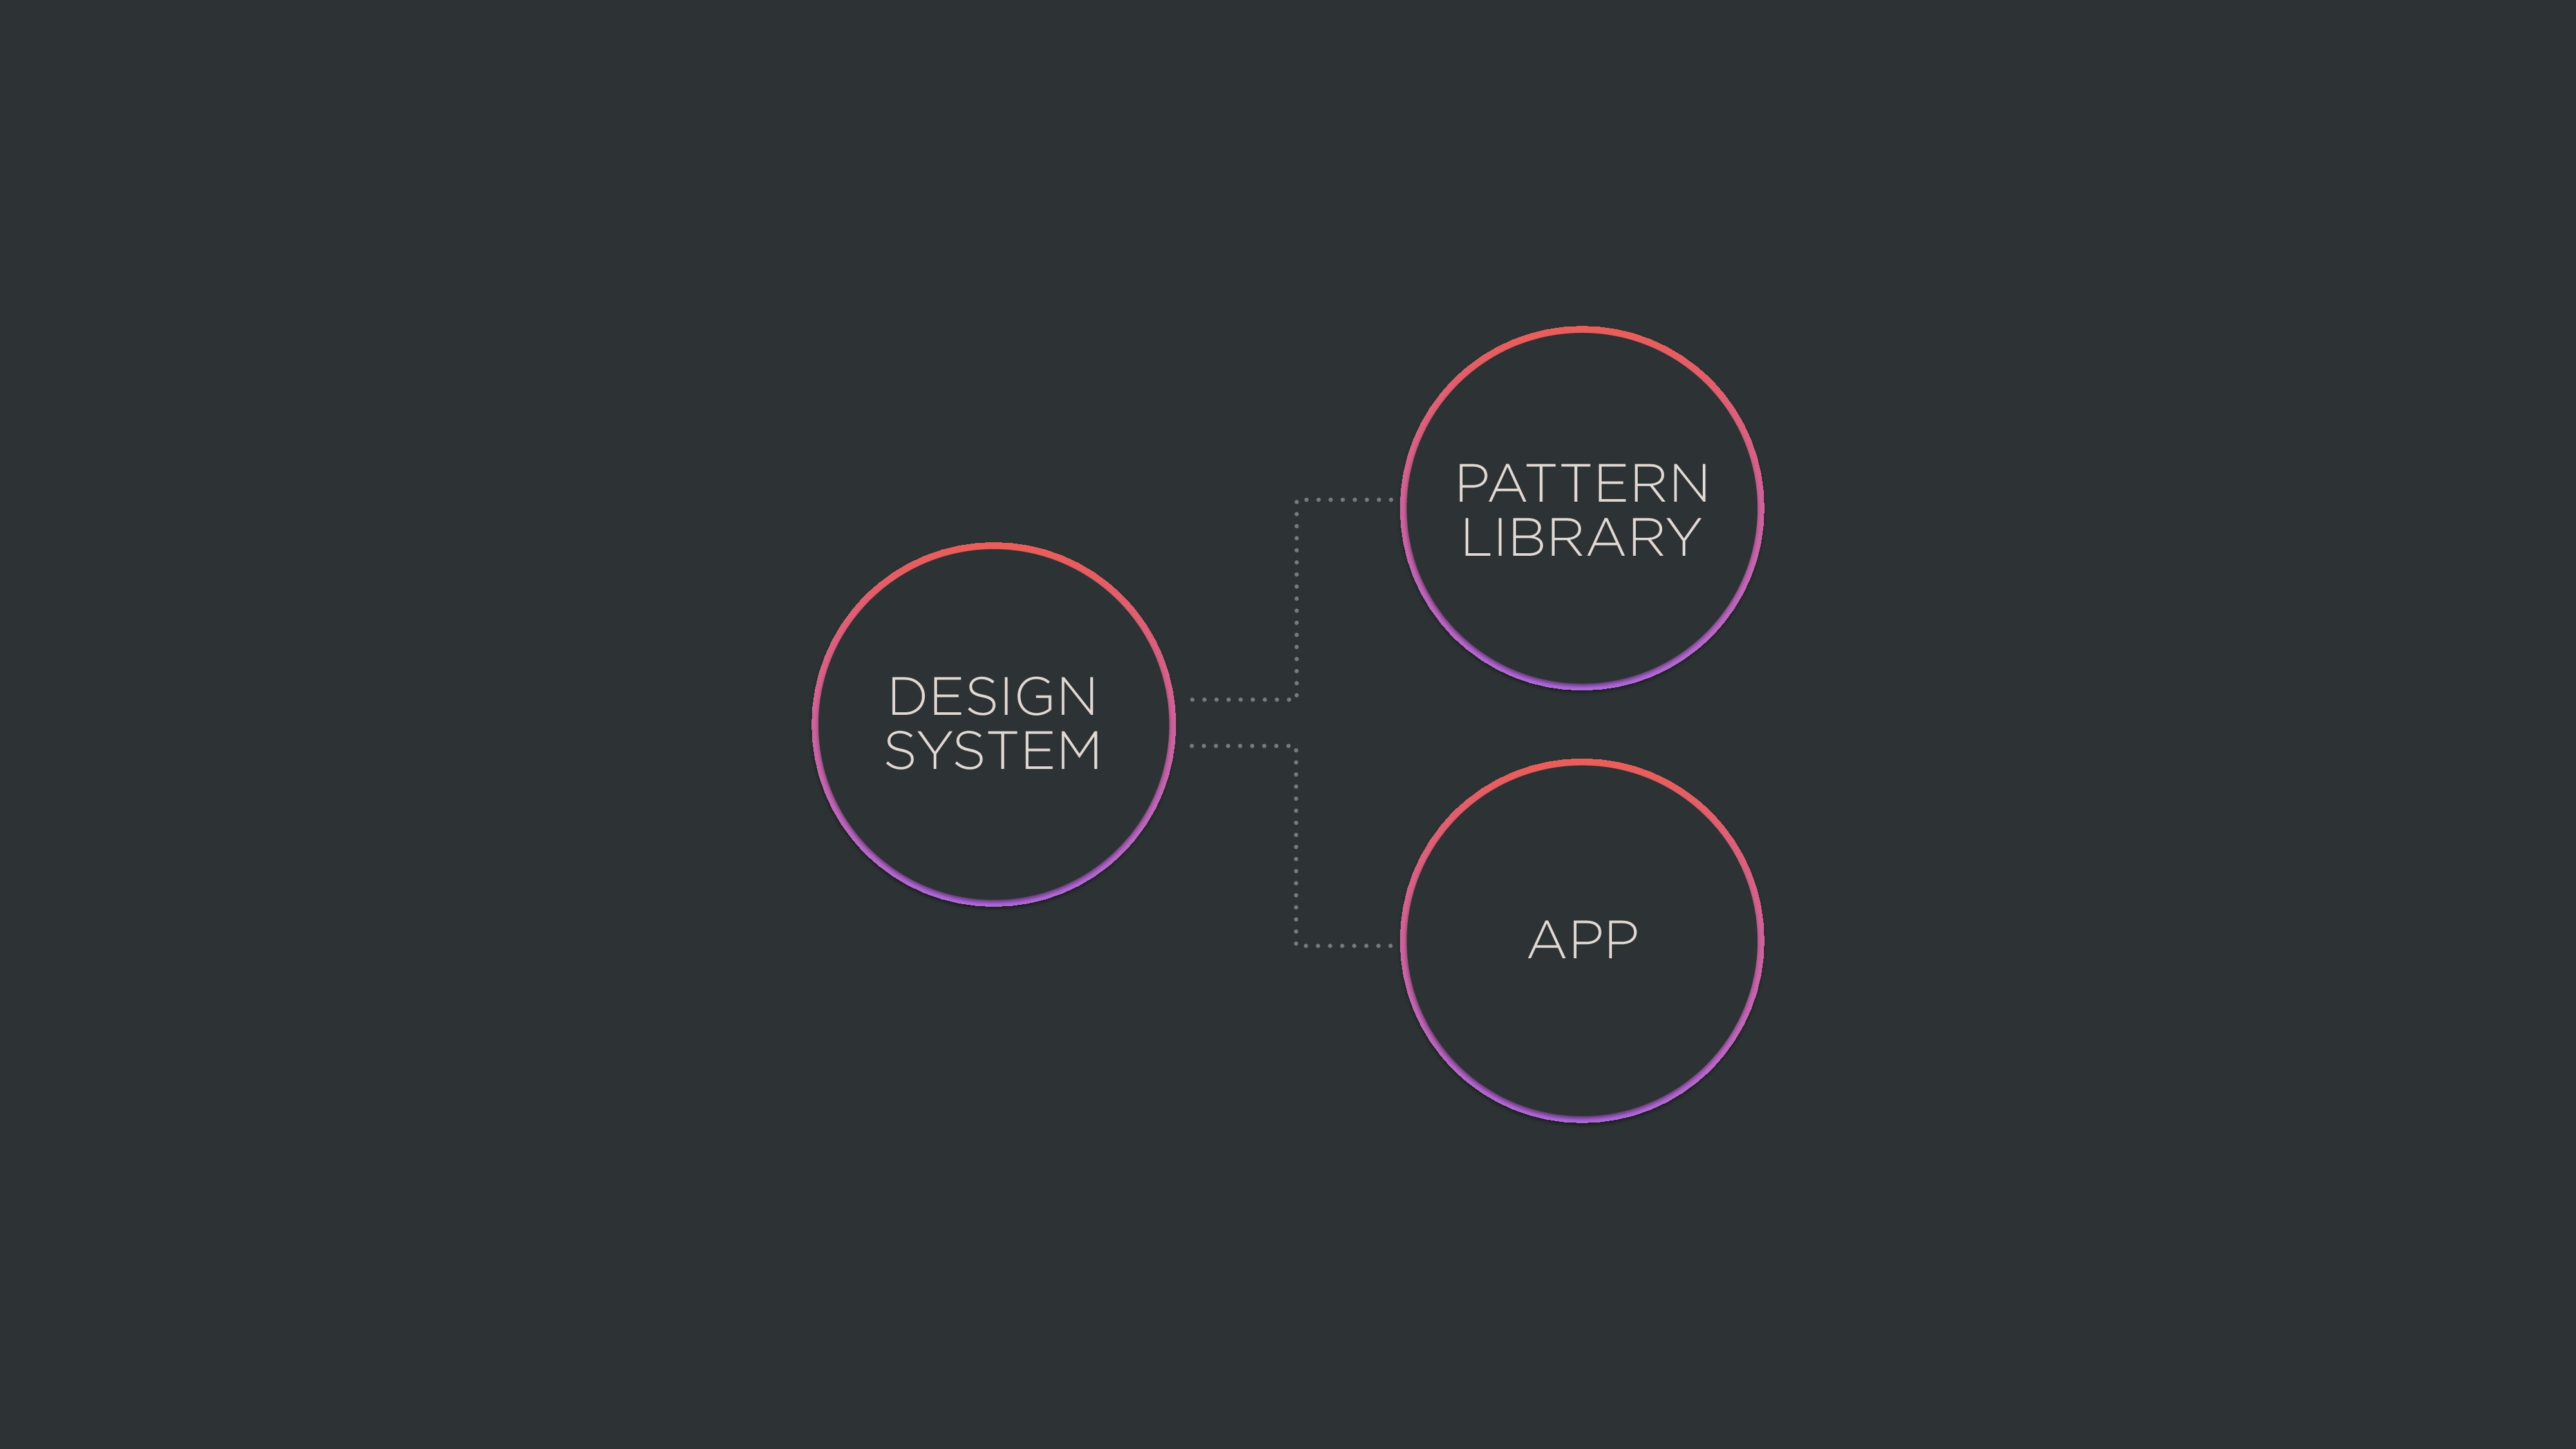 PATTERN LIBRARY APP DESIGN SYSTEM